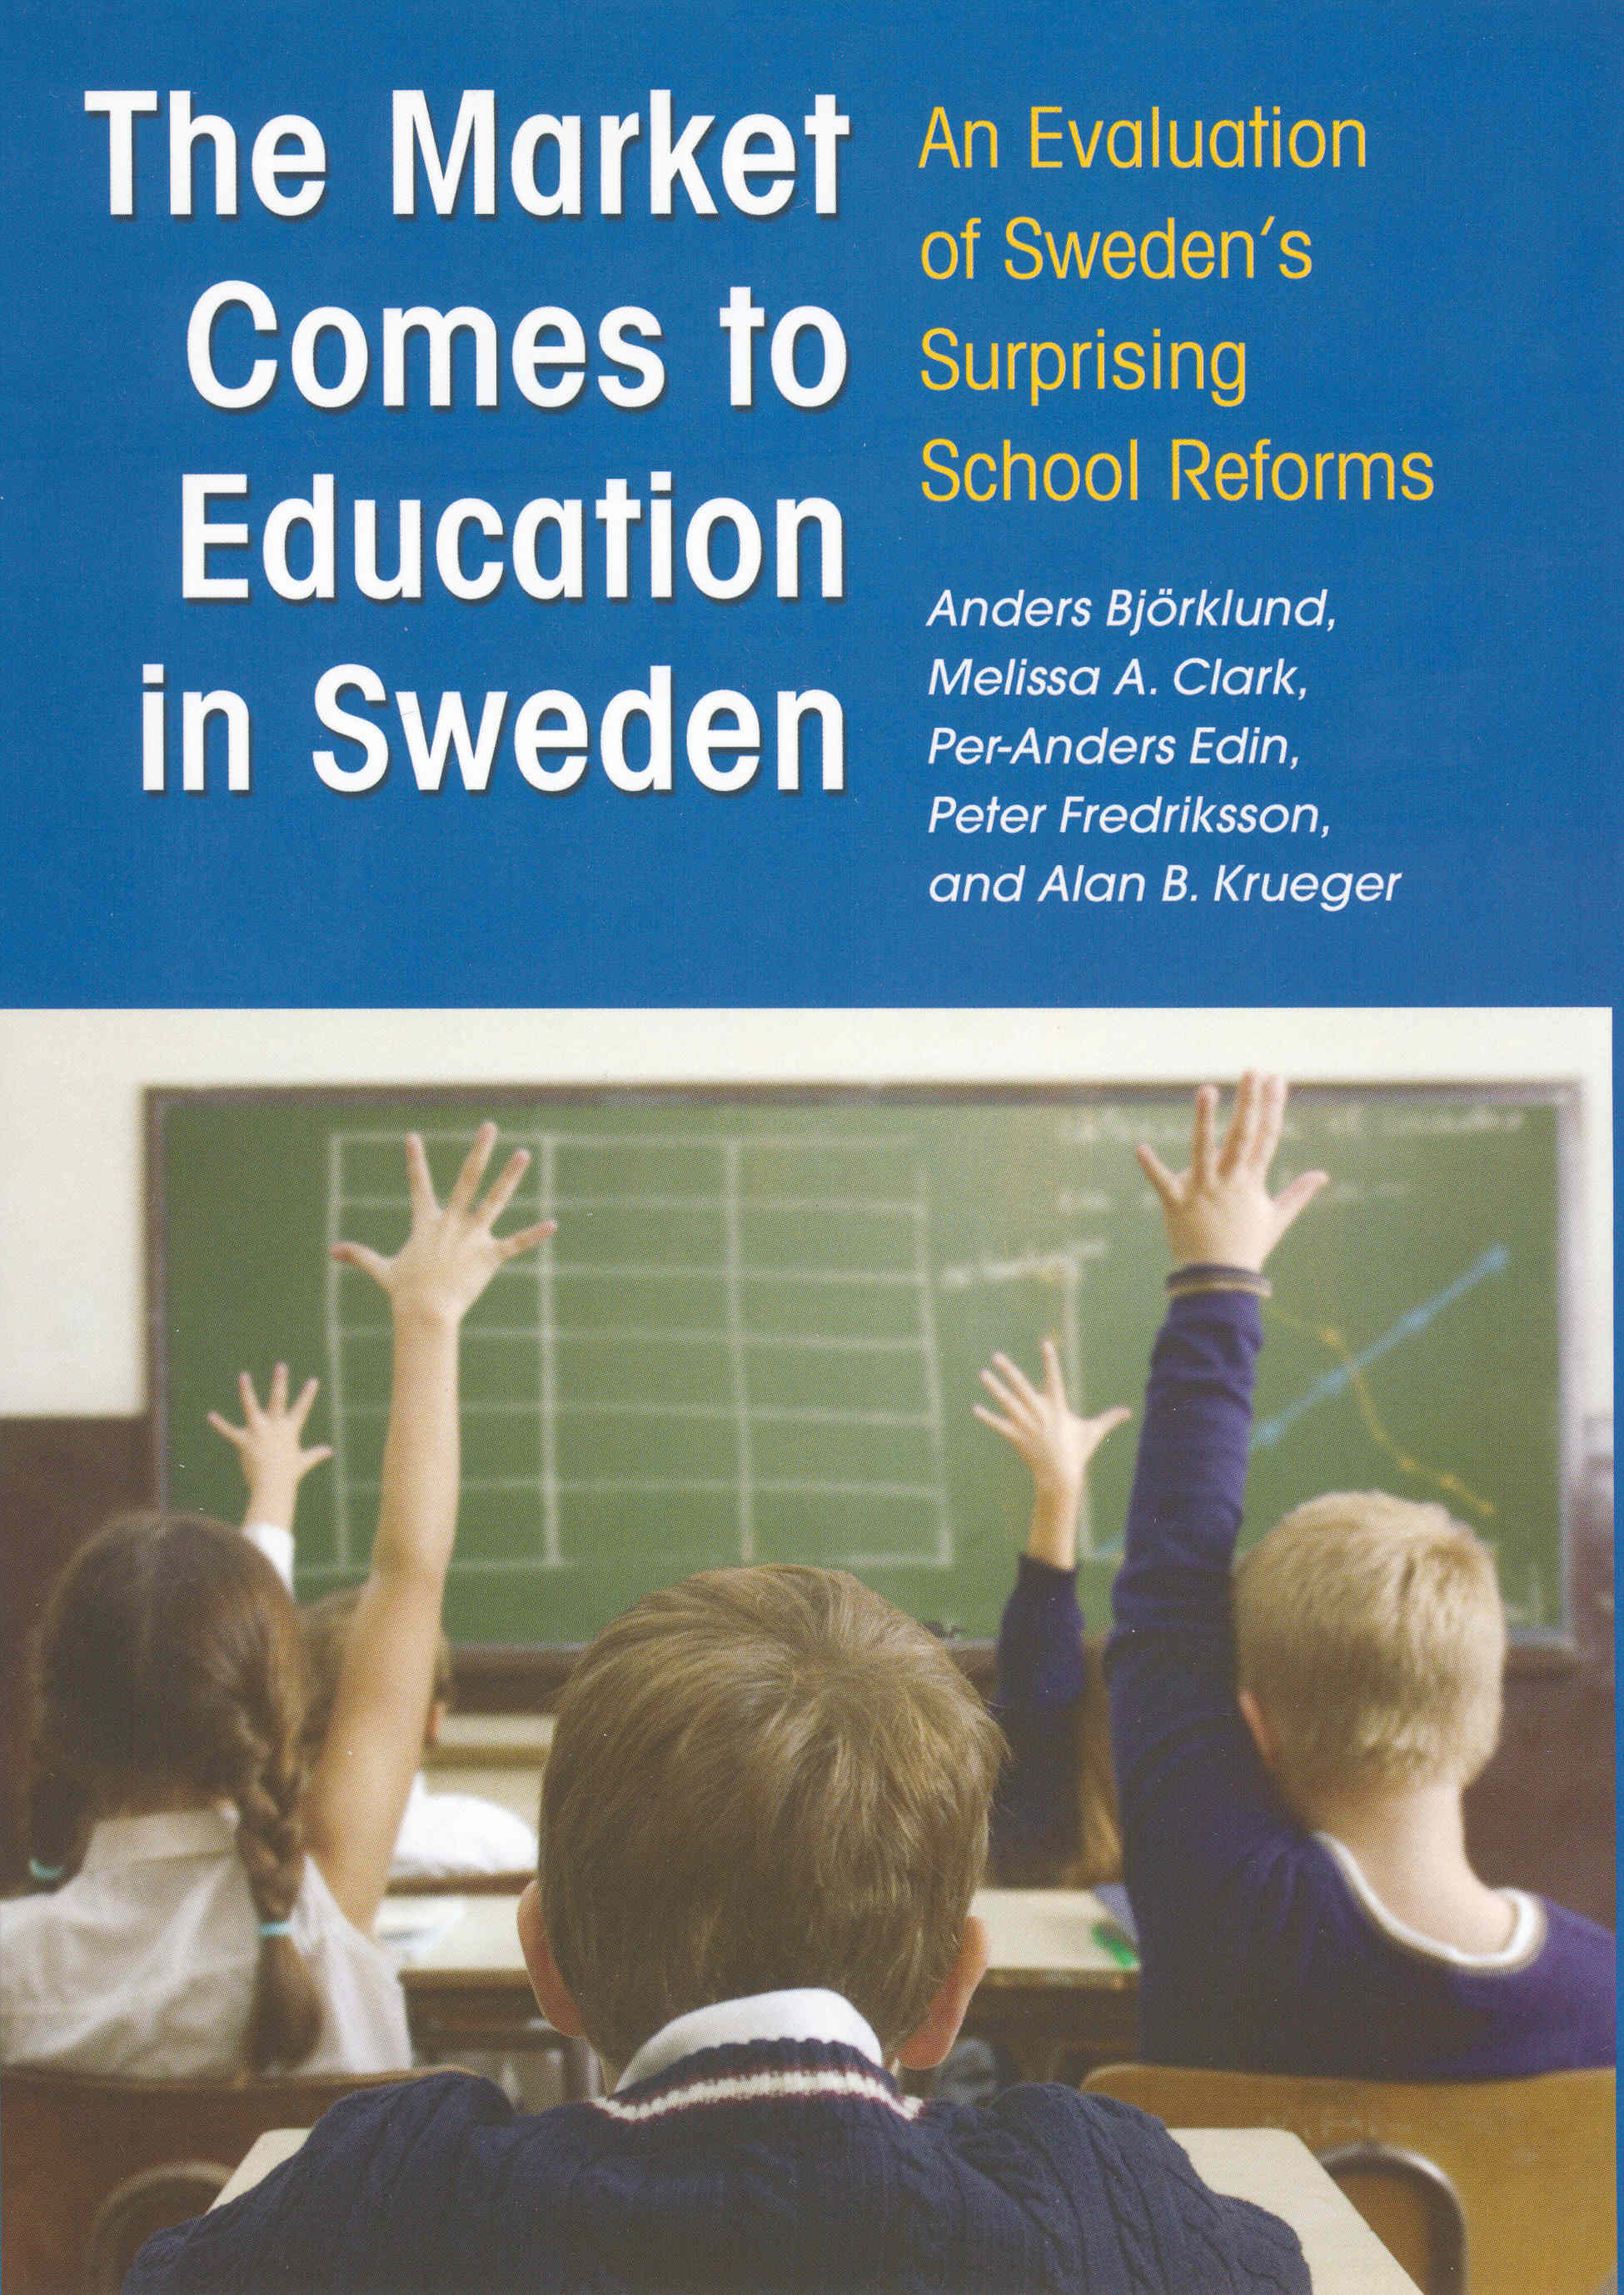 The Market Comes to Education in Sweden